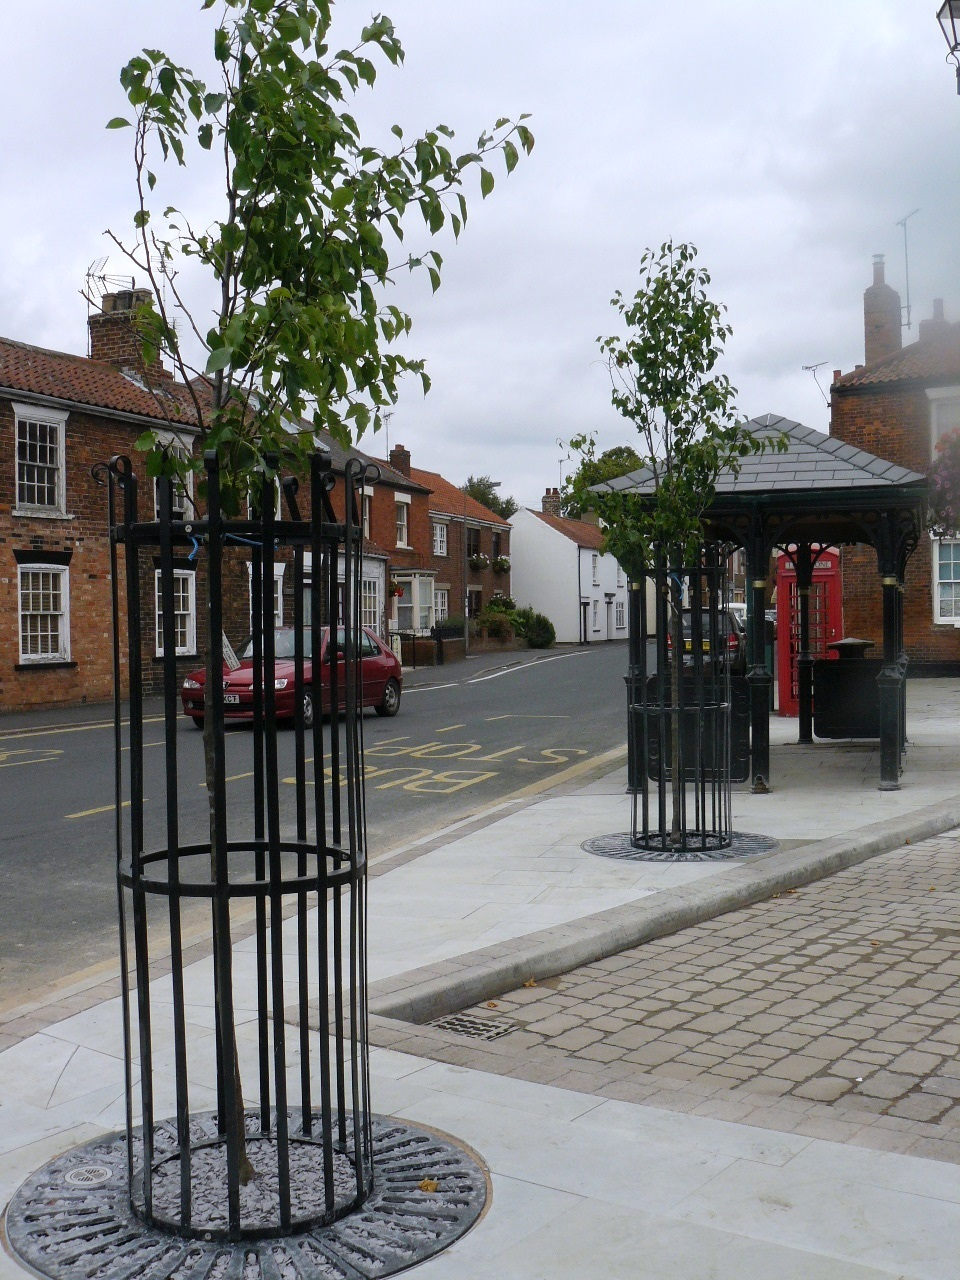 Trees returned to Market Place at last!